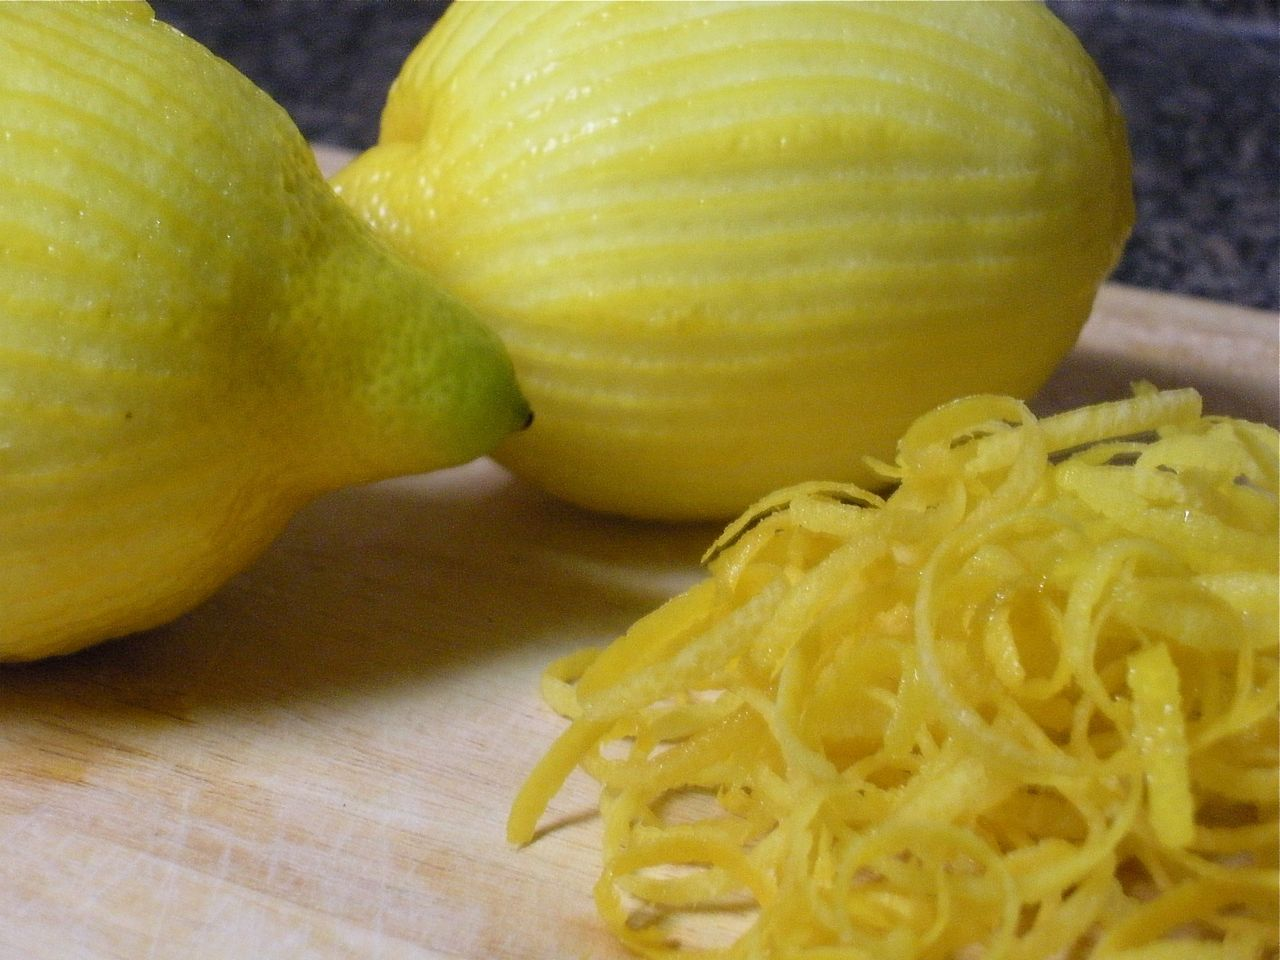 Lemon and zest